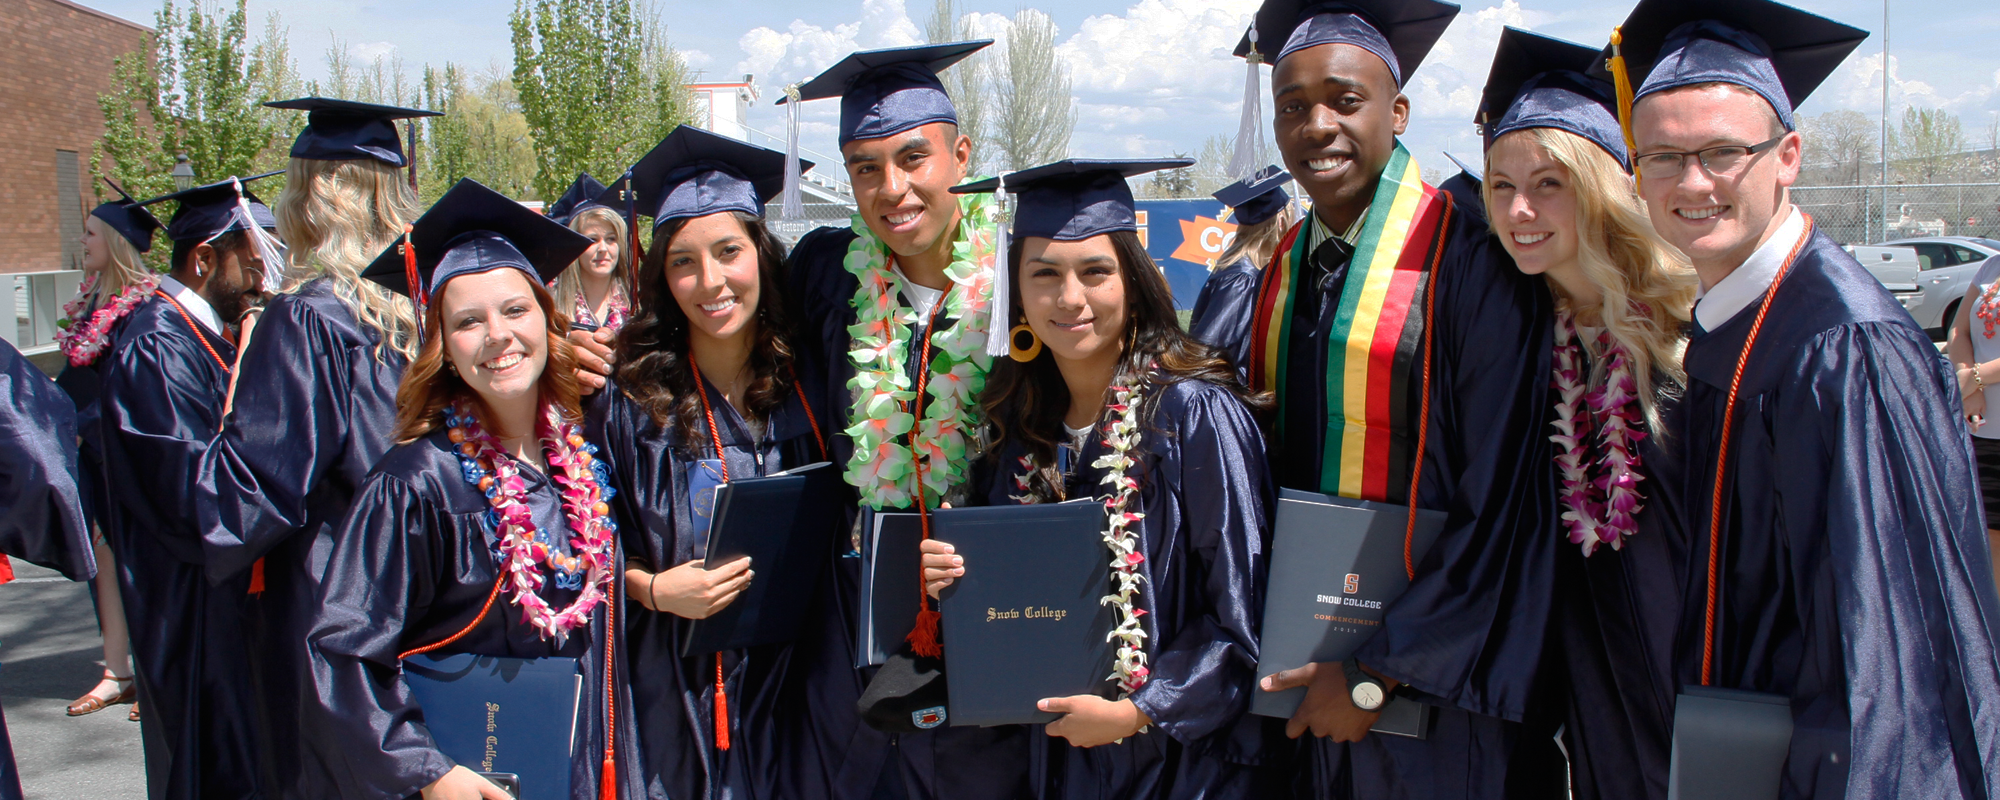 snow college graduates record number of students home snow college news 2016 snow college graduates record number of students